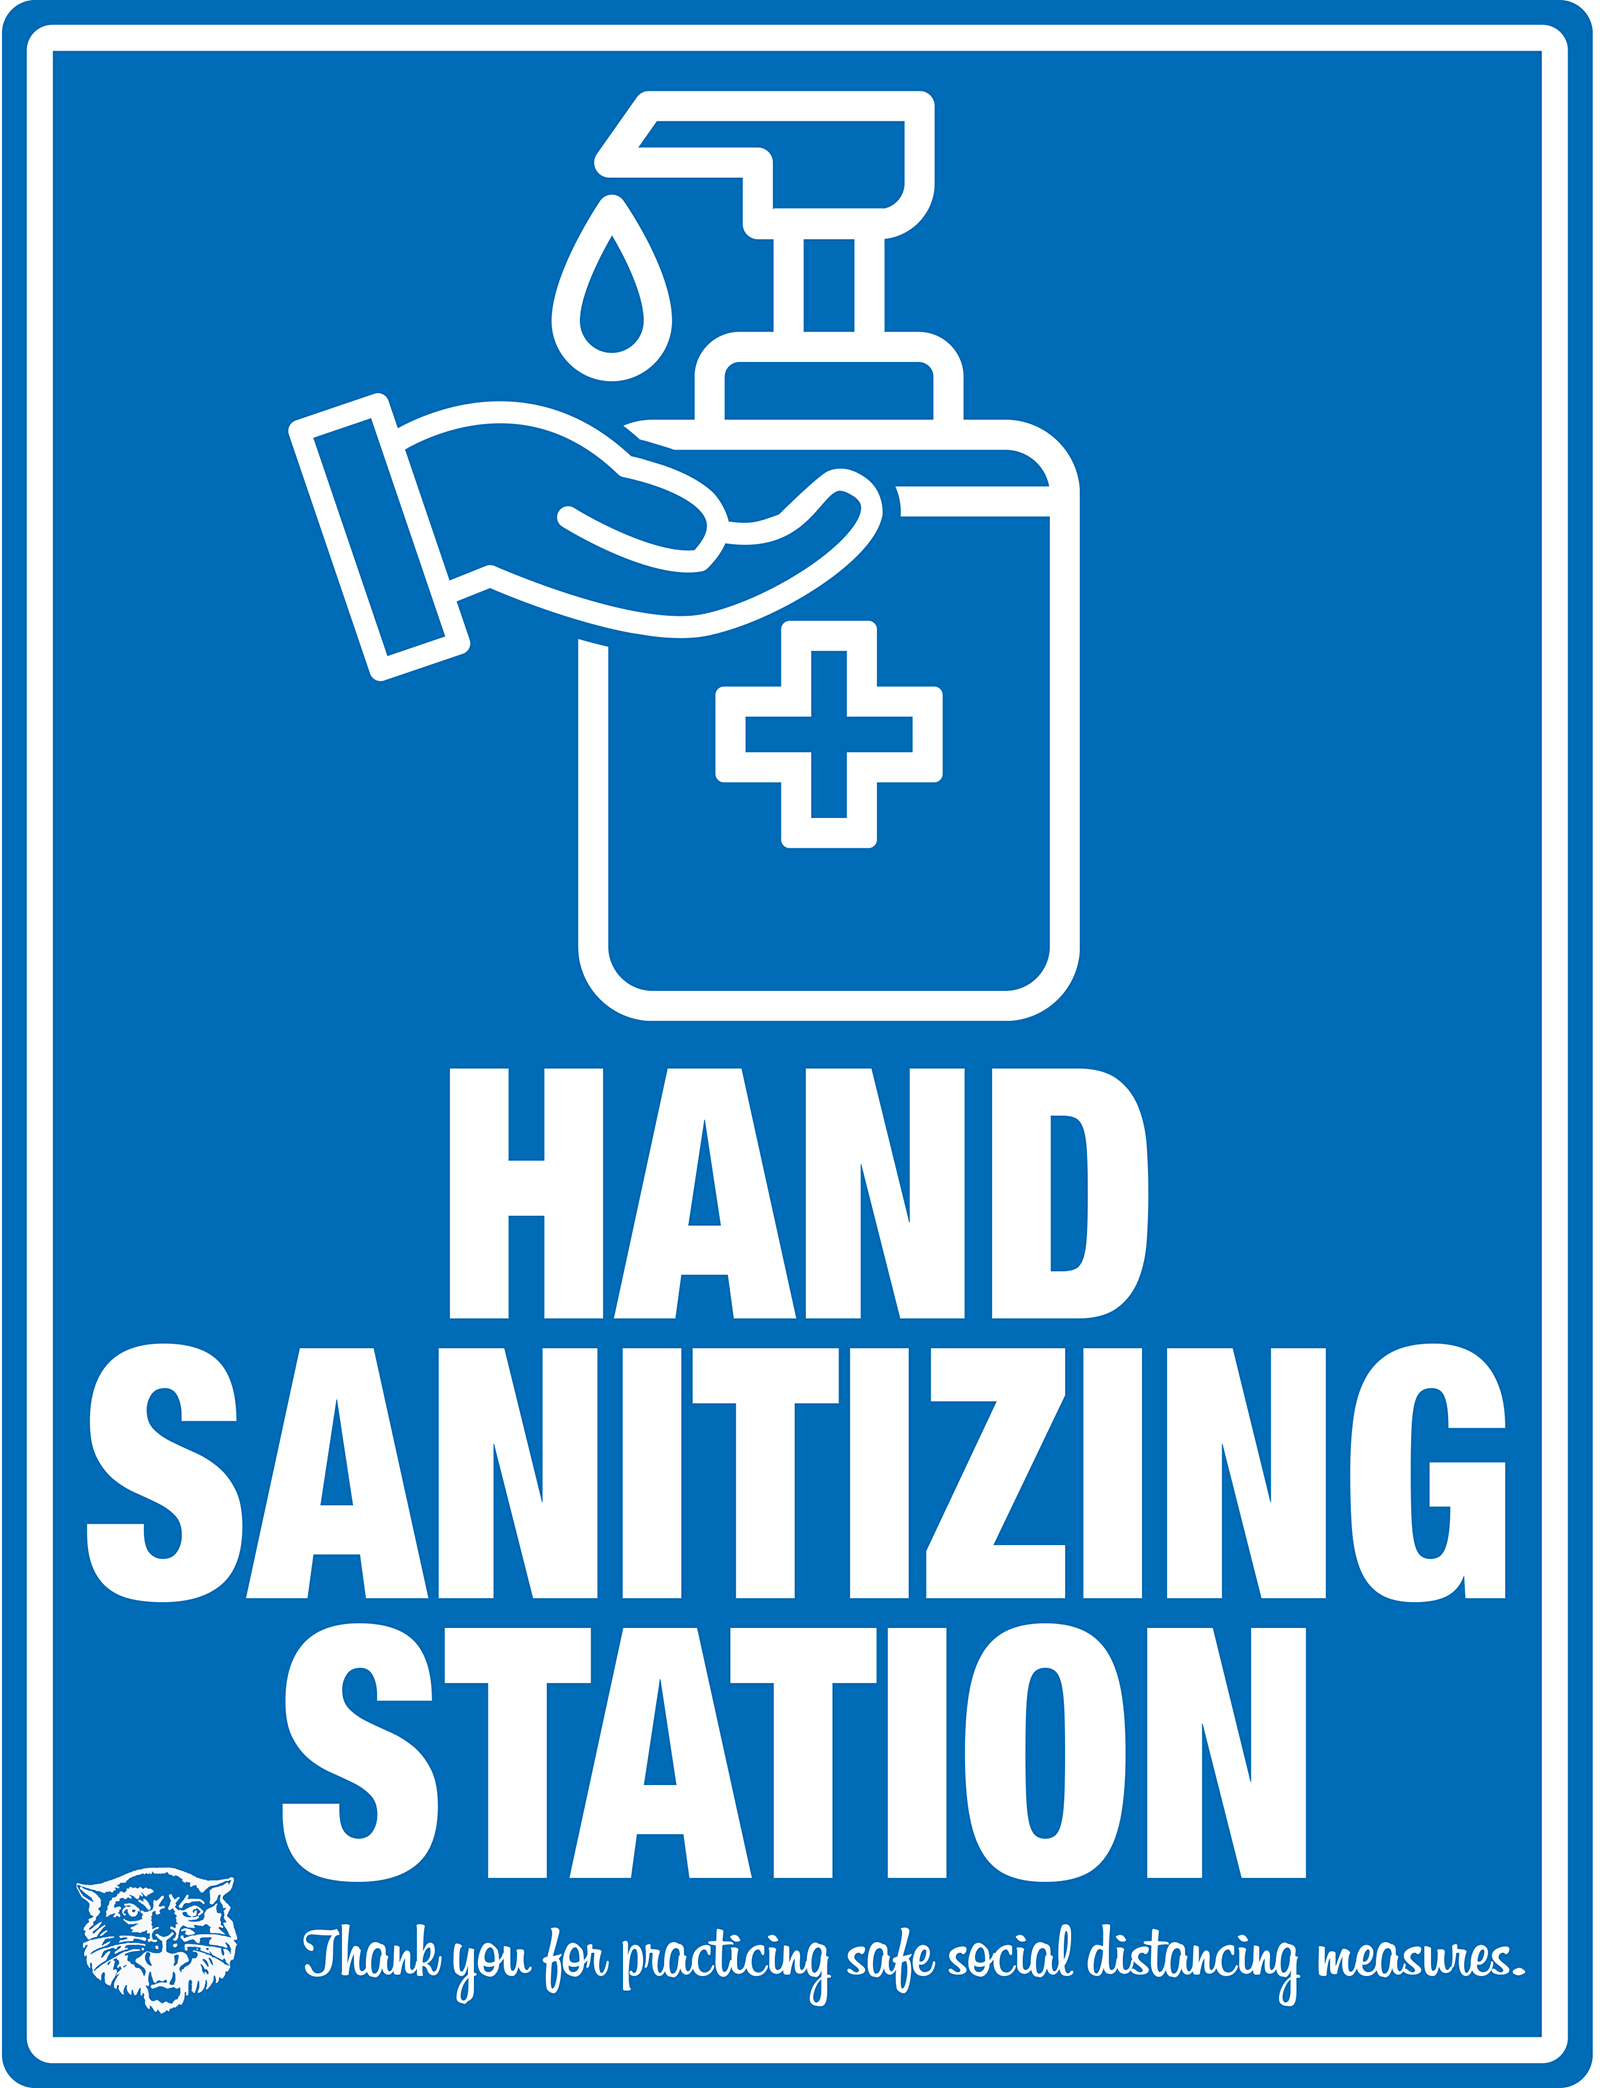 HAND SANITIZING STATION Thank you for practicing safe social distancing measures.